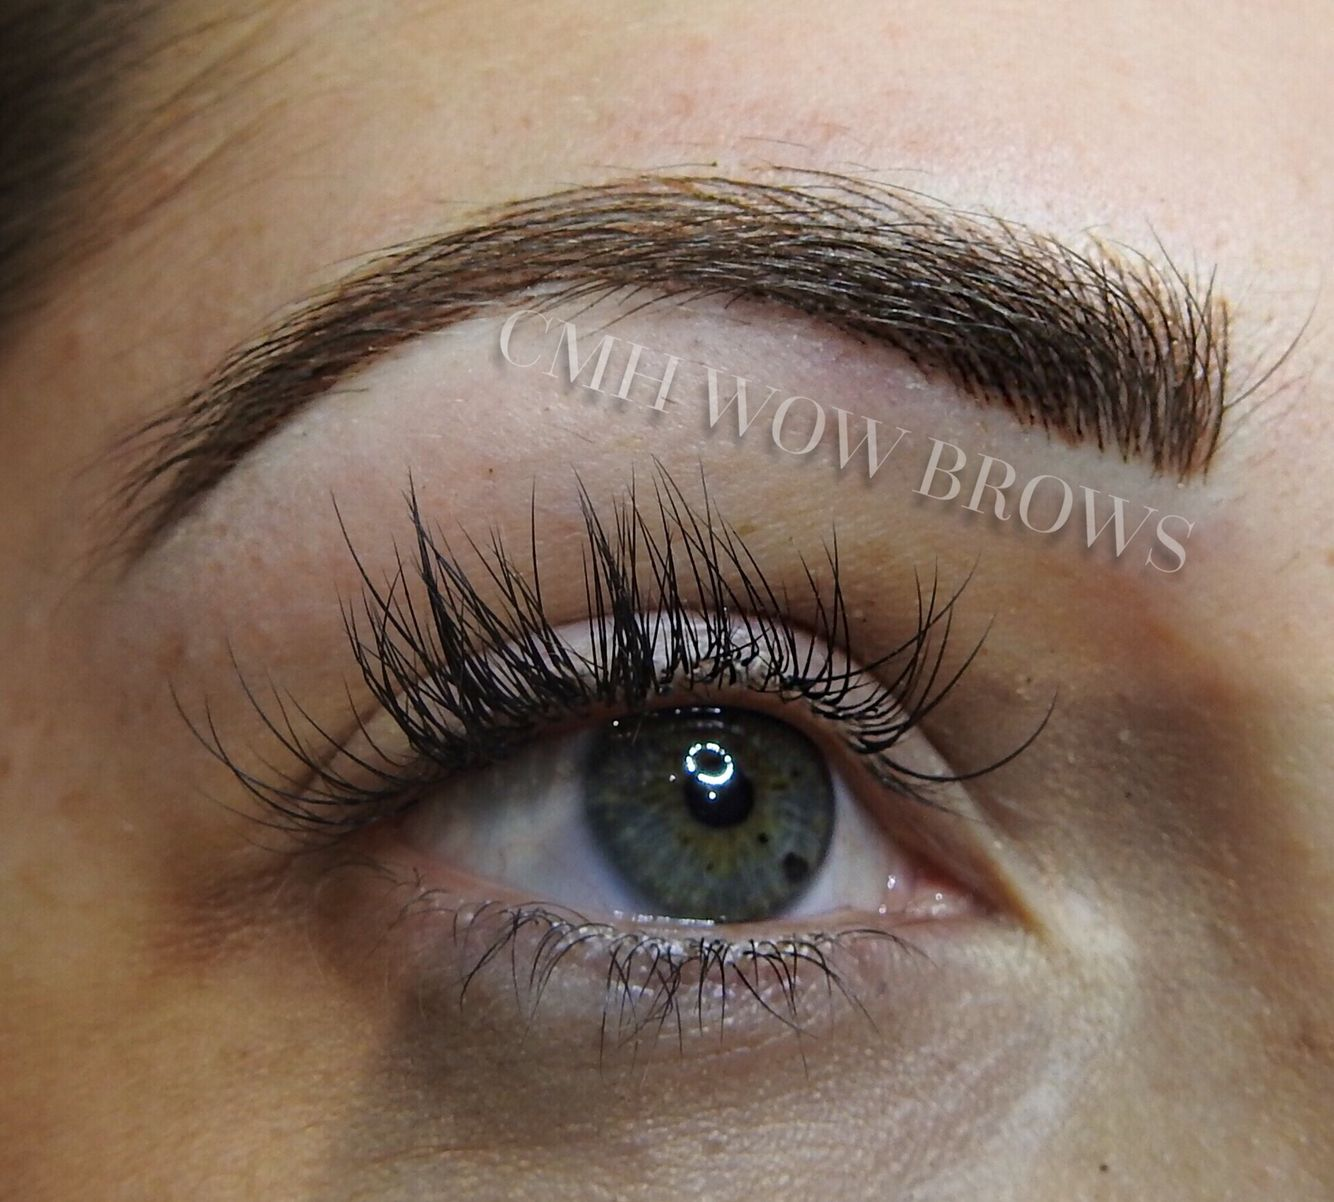 Cmh Tayla Made Wow Brows Cmhwowbrows On Pinterest